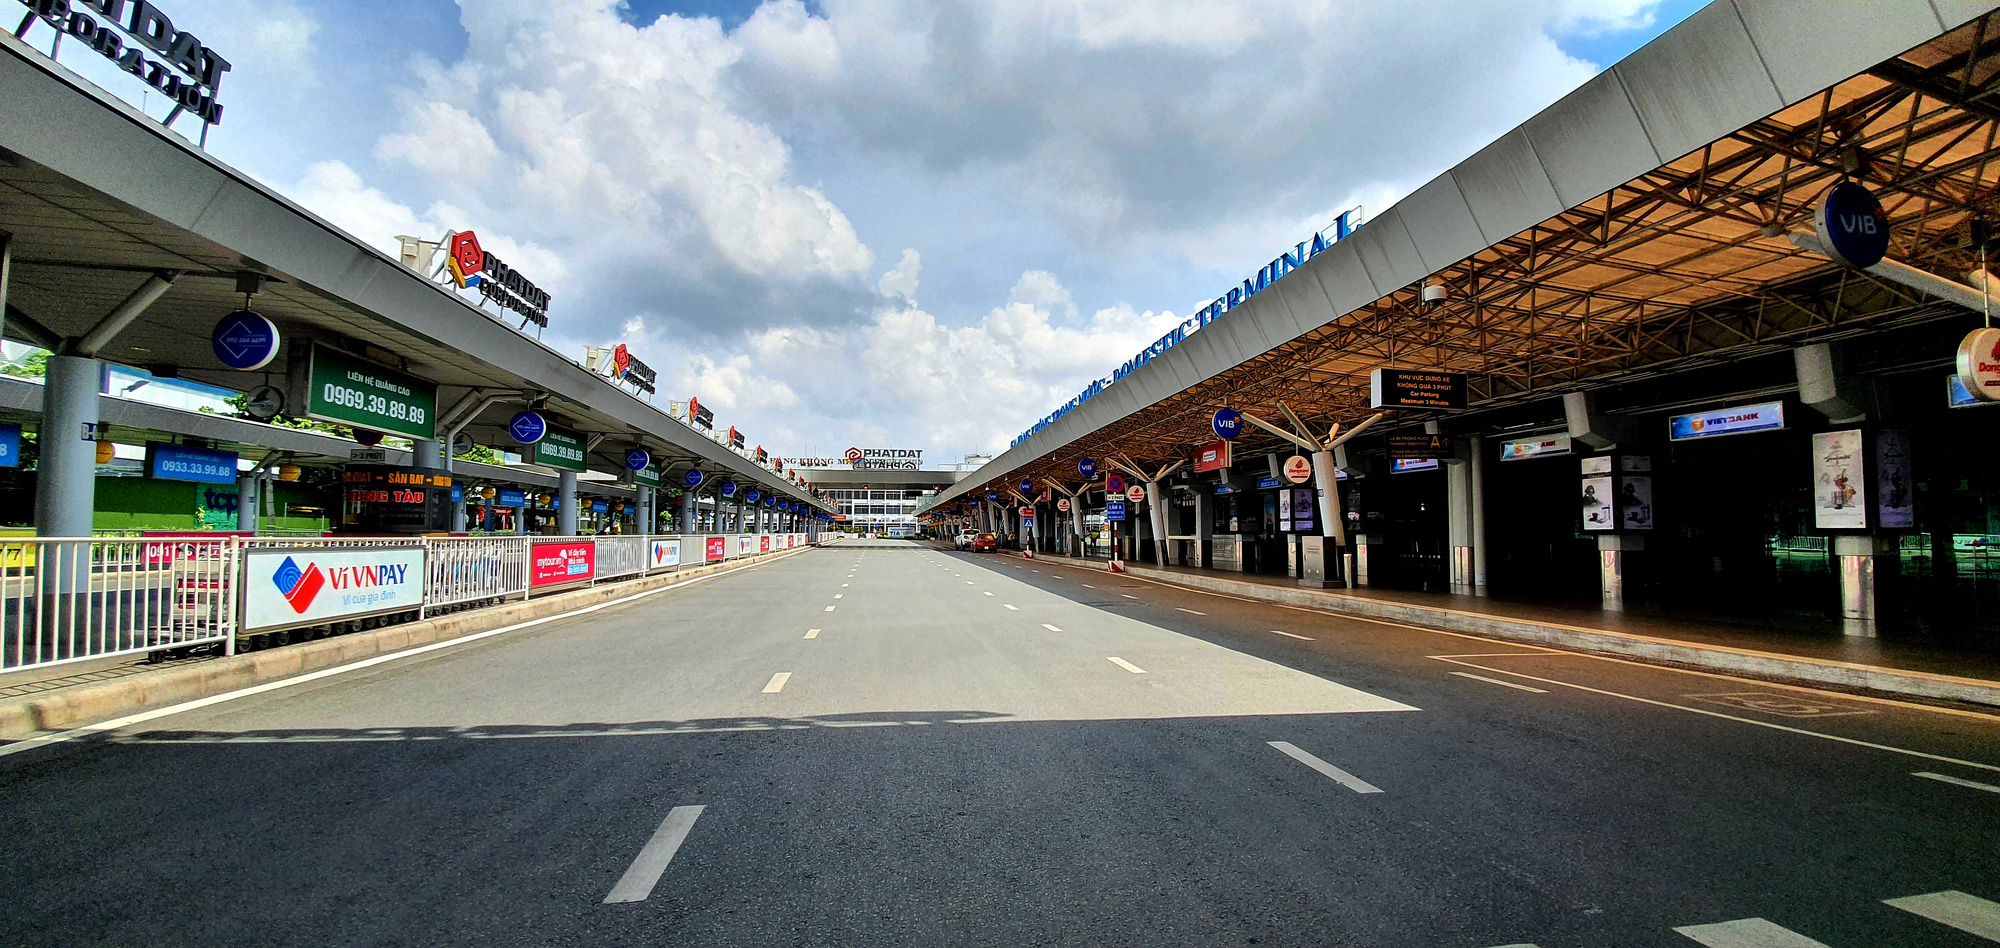 Lanes for private vehicles to pick up passengers remain empty at Tan Son Nhat International Airport in Ho Chi Minh City, July 1, 2021. Photo: C. Trung / Tuoi Tre